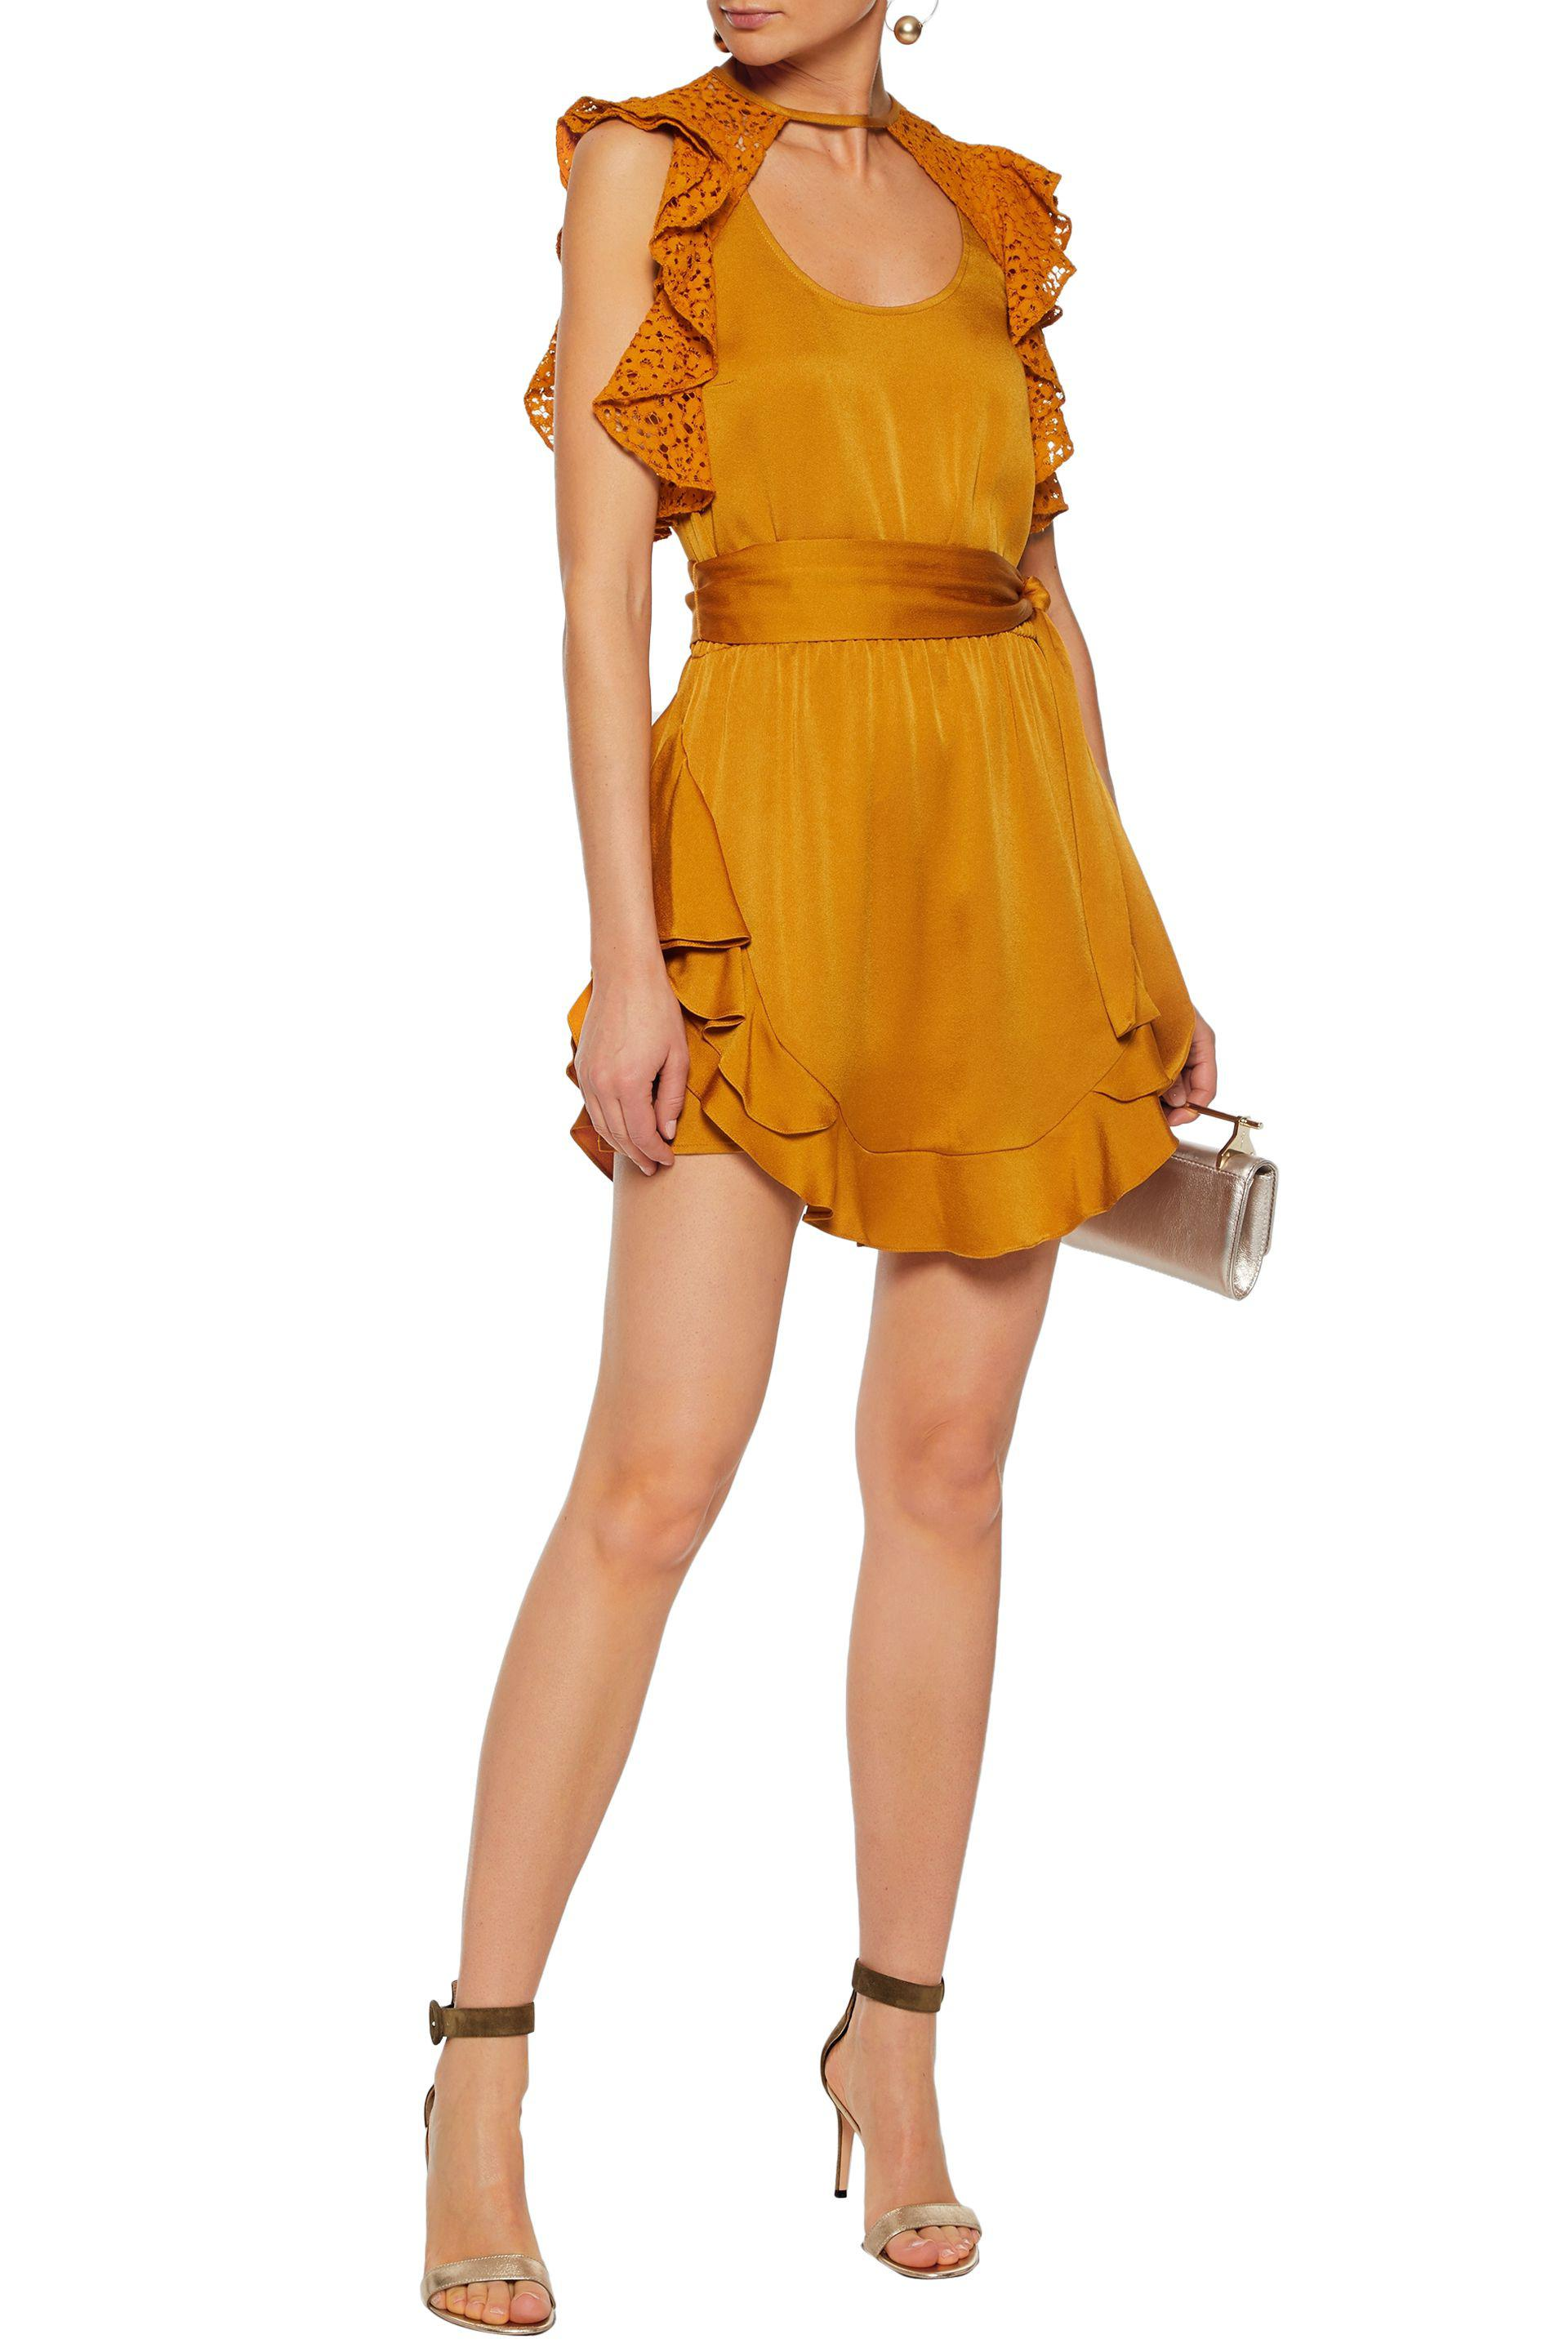 Marissa Webb Woman Ruffled Corded Lace-paneled Satin-crepe Mini Dress Saffron Size S Marissa Webb VMzWSE0ra